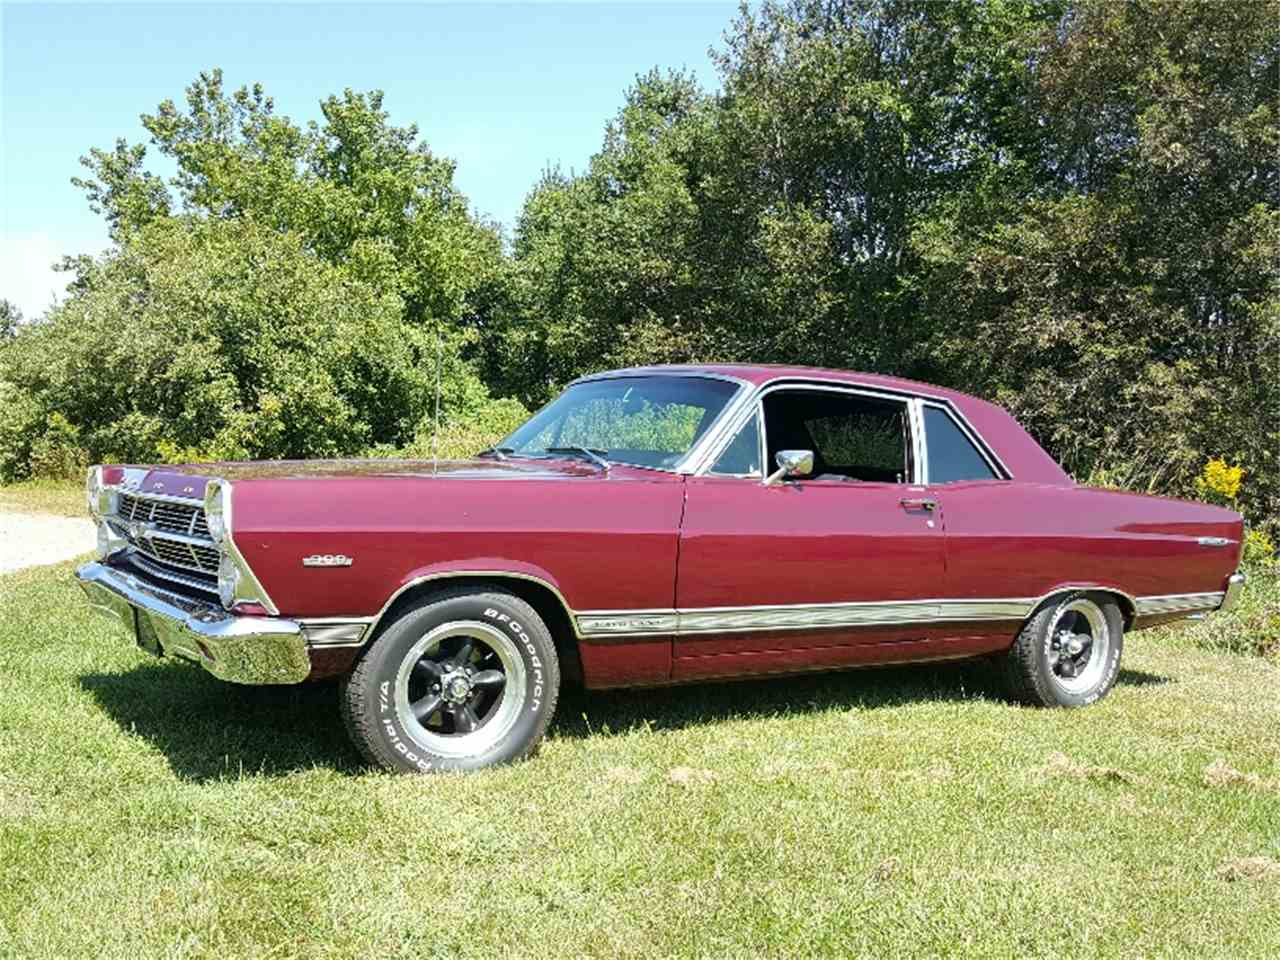 Large Picture of Classic 1967 Ford Fairlane 500 located in Woodstock Connecticut - $19,995.00 Offered by Woottons Redline Classic Cars - LT5G